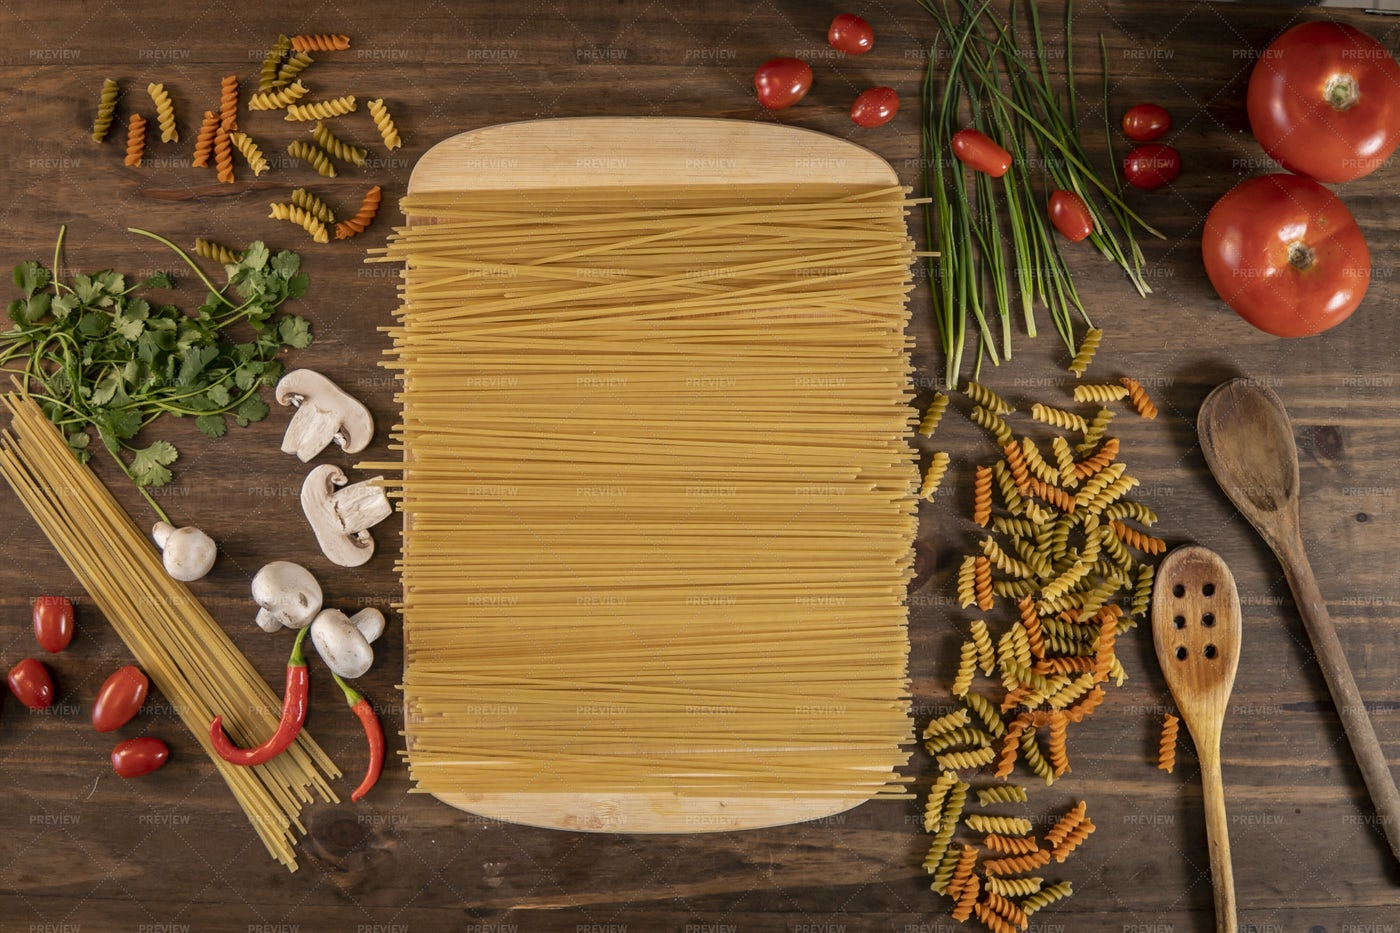 Vegetables And Pasta: Stock Photos